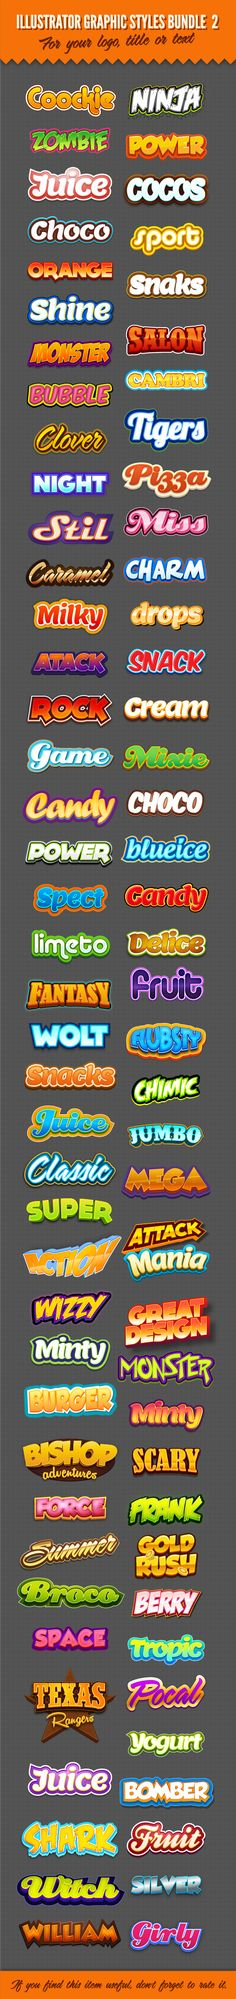 Illustrator Logo Graphic Text Styles Bundle For Adobe Illustrator #design #ai Download: http://graphicriver.net/item/illustrator-logo-graphic-styles-bundle-2/9523253?ref=ksioks